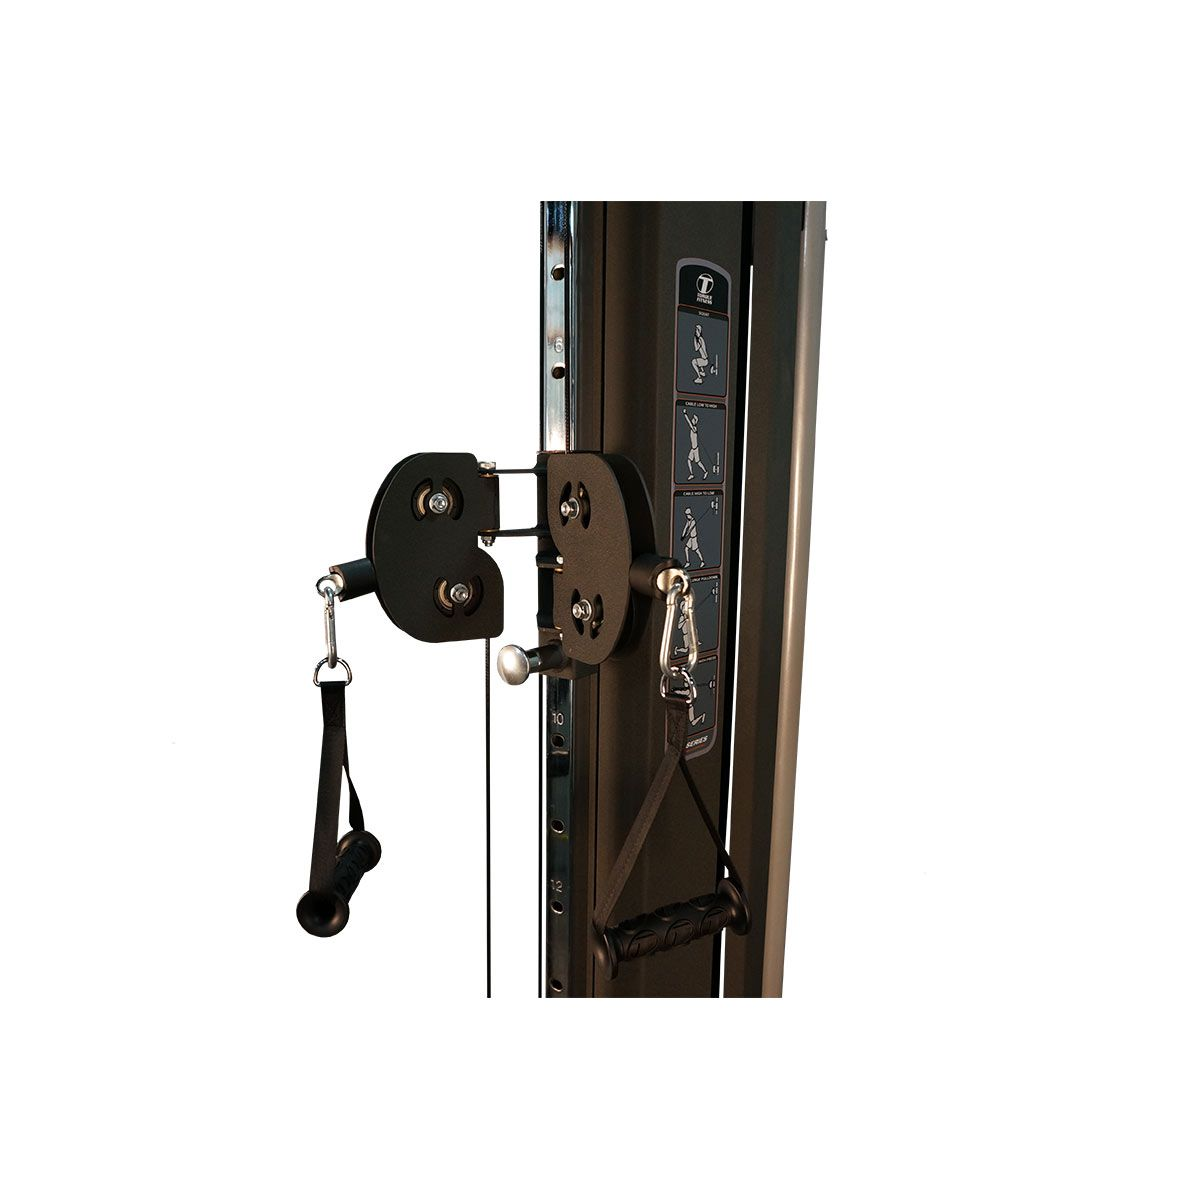 Cable component station msf pin locker storage garage gym